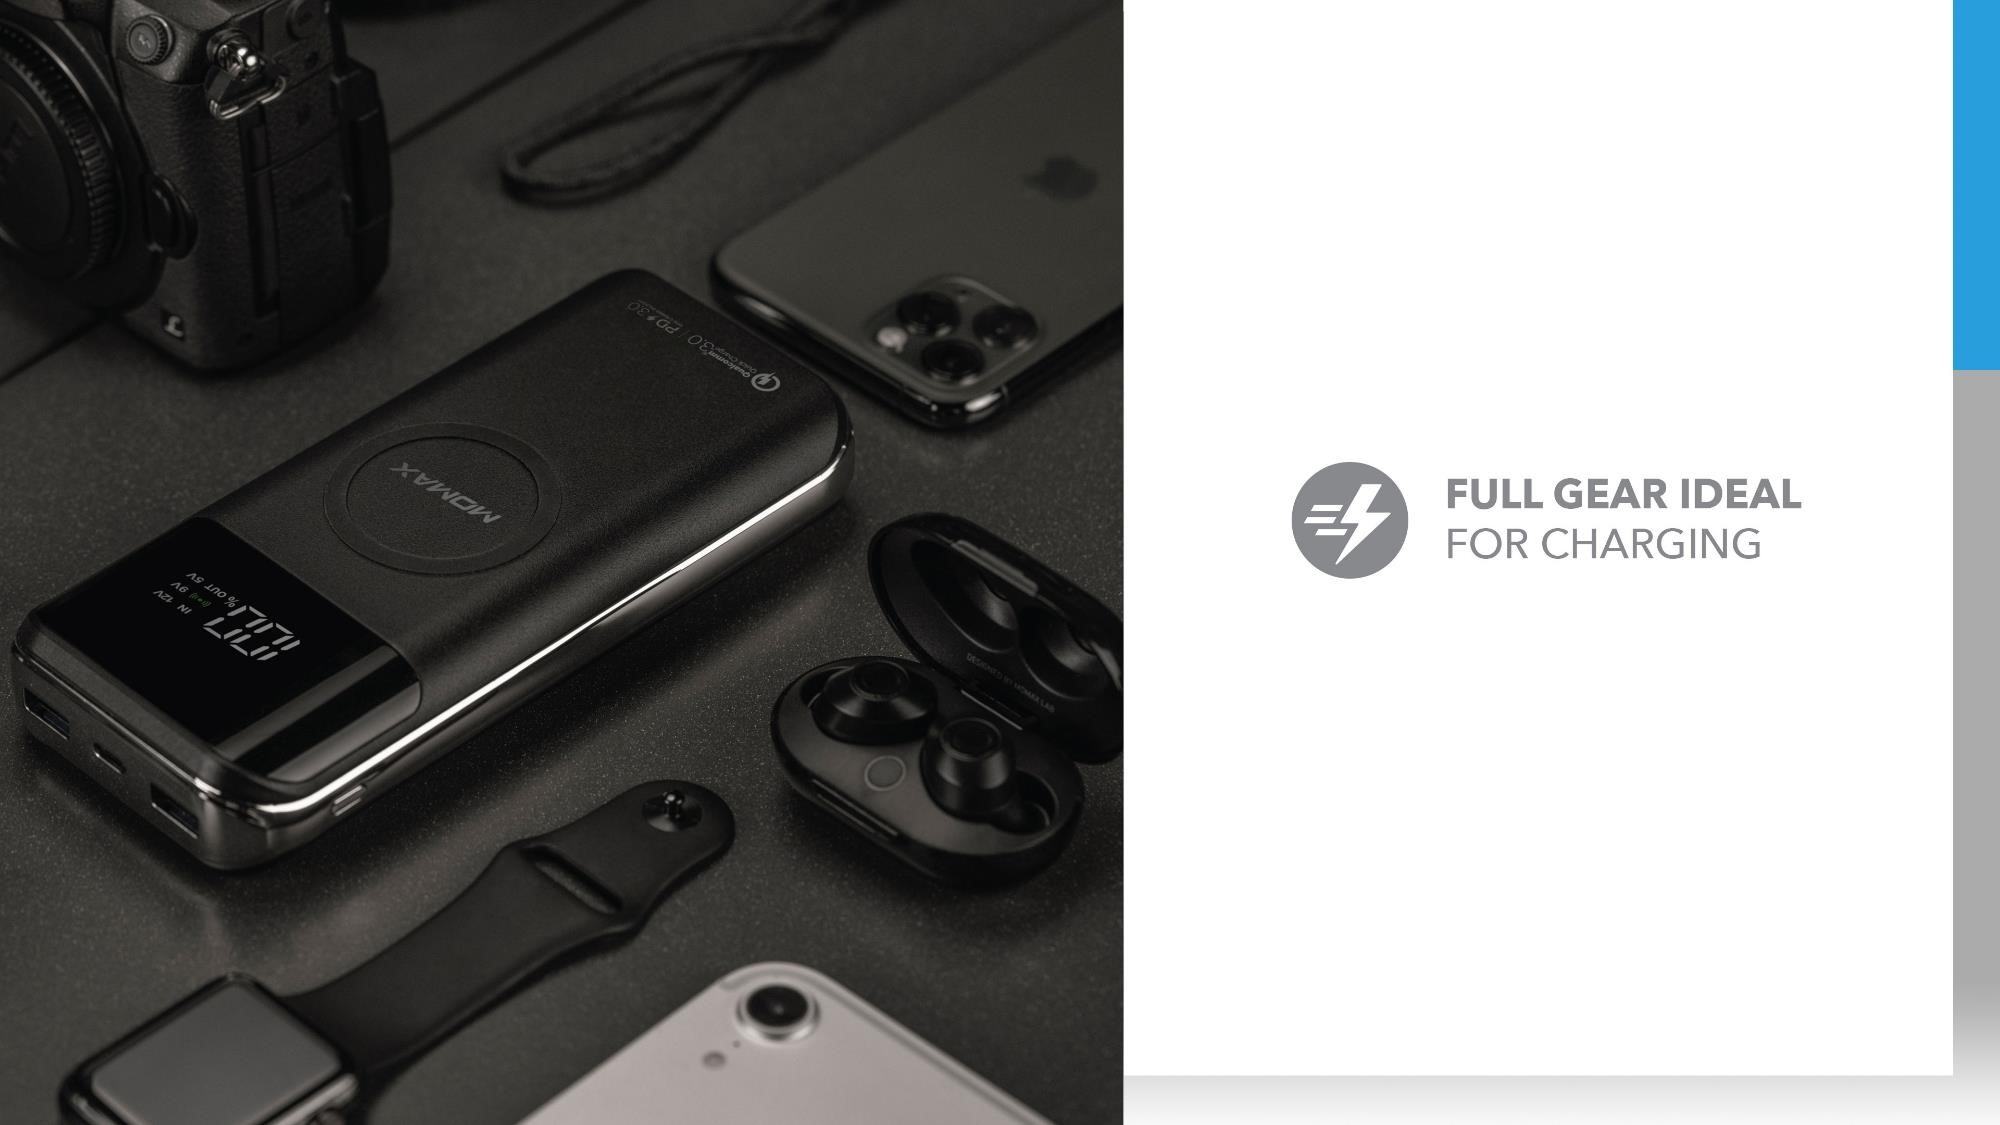 Q.Power Air 2+ Wireless External Battery Pack: Full Gear Ideal for Charging